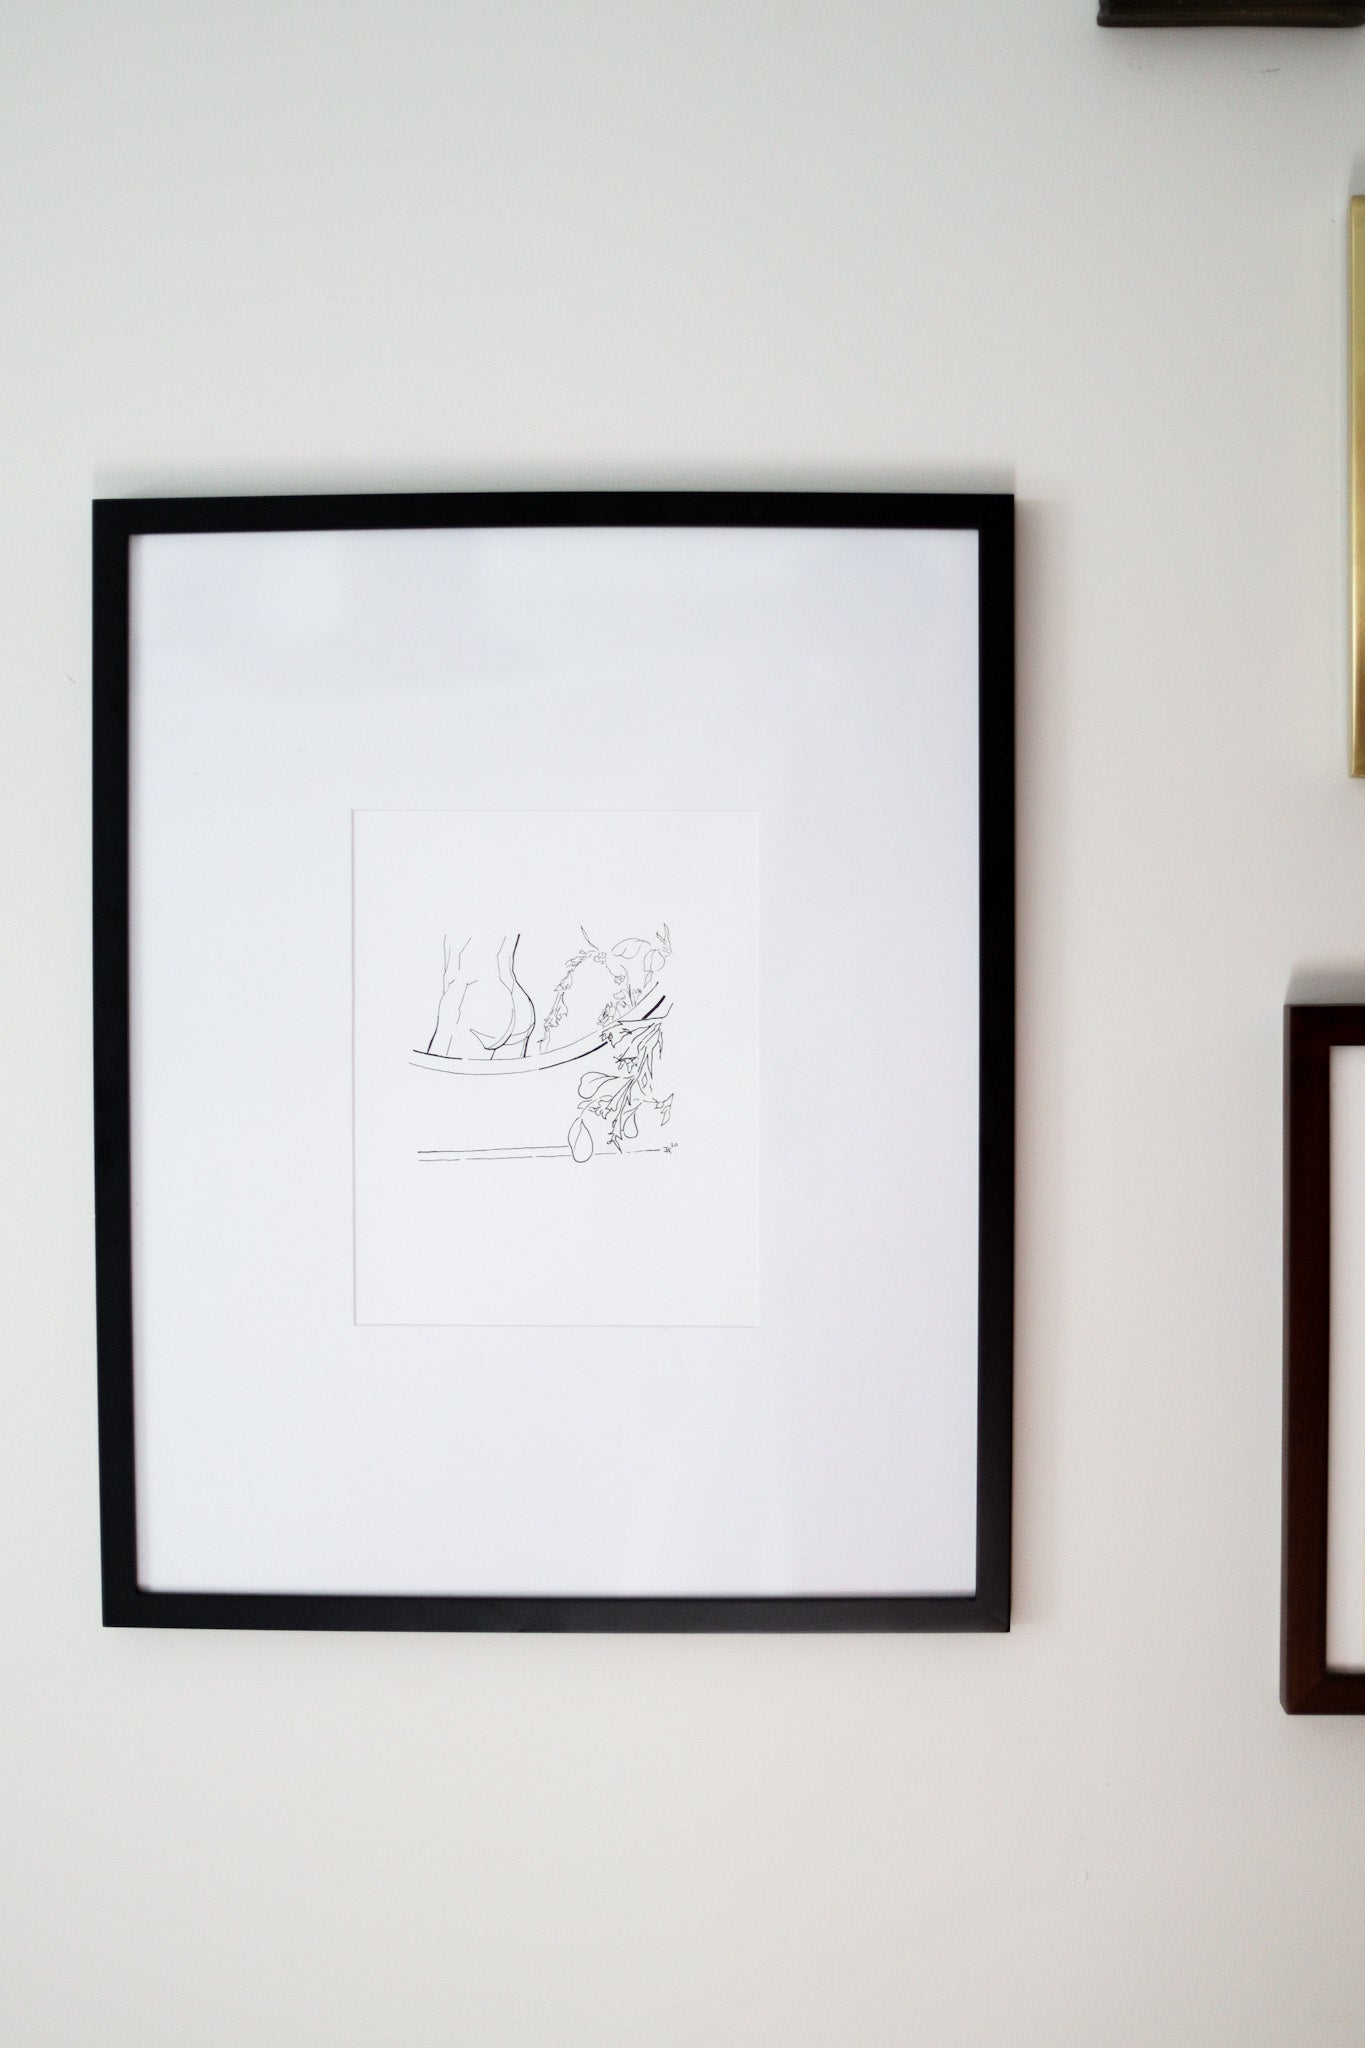 Black framed 'Self' by Jonathan Kent Adams on the wall